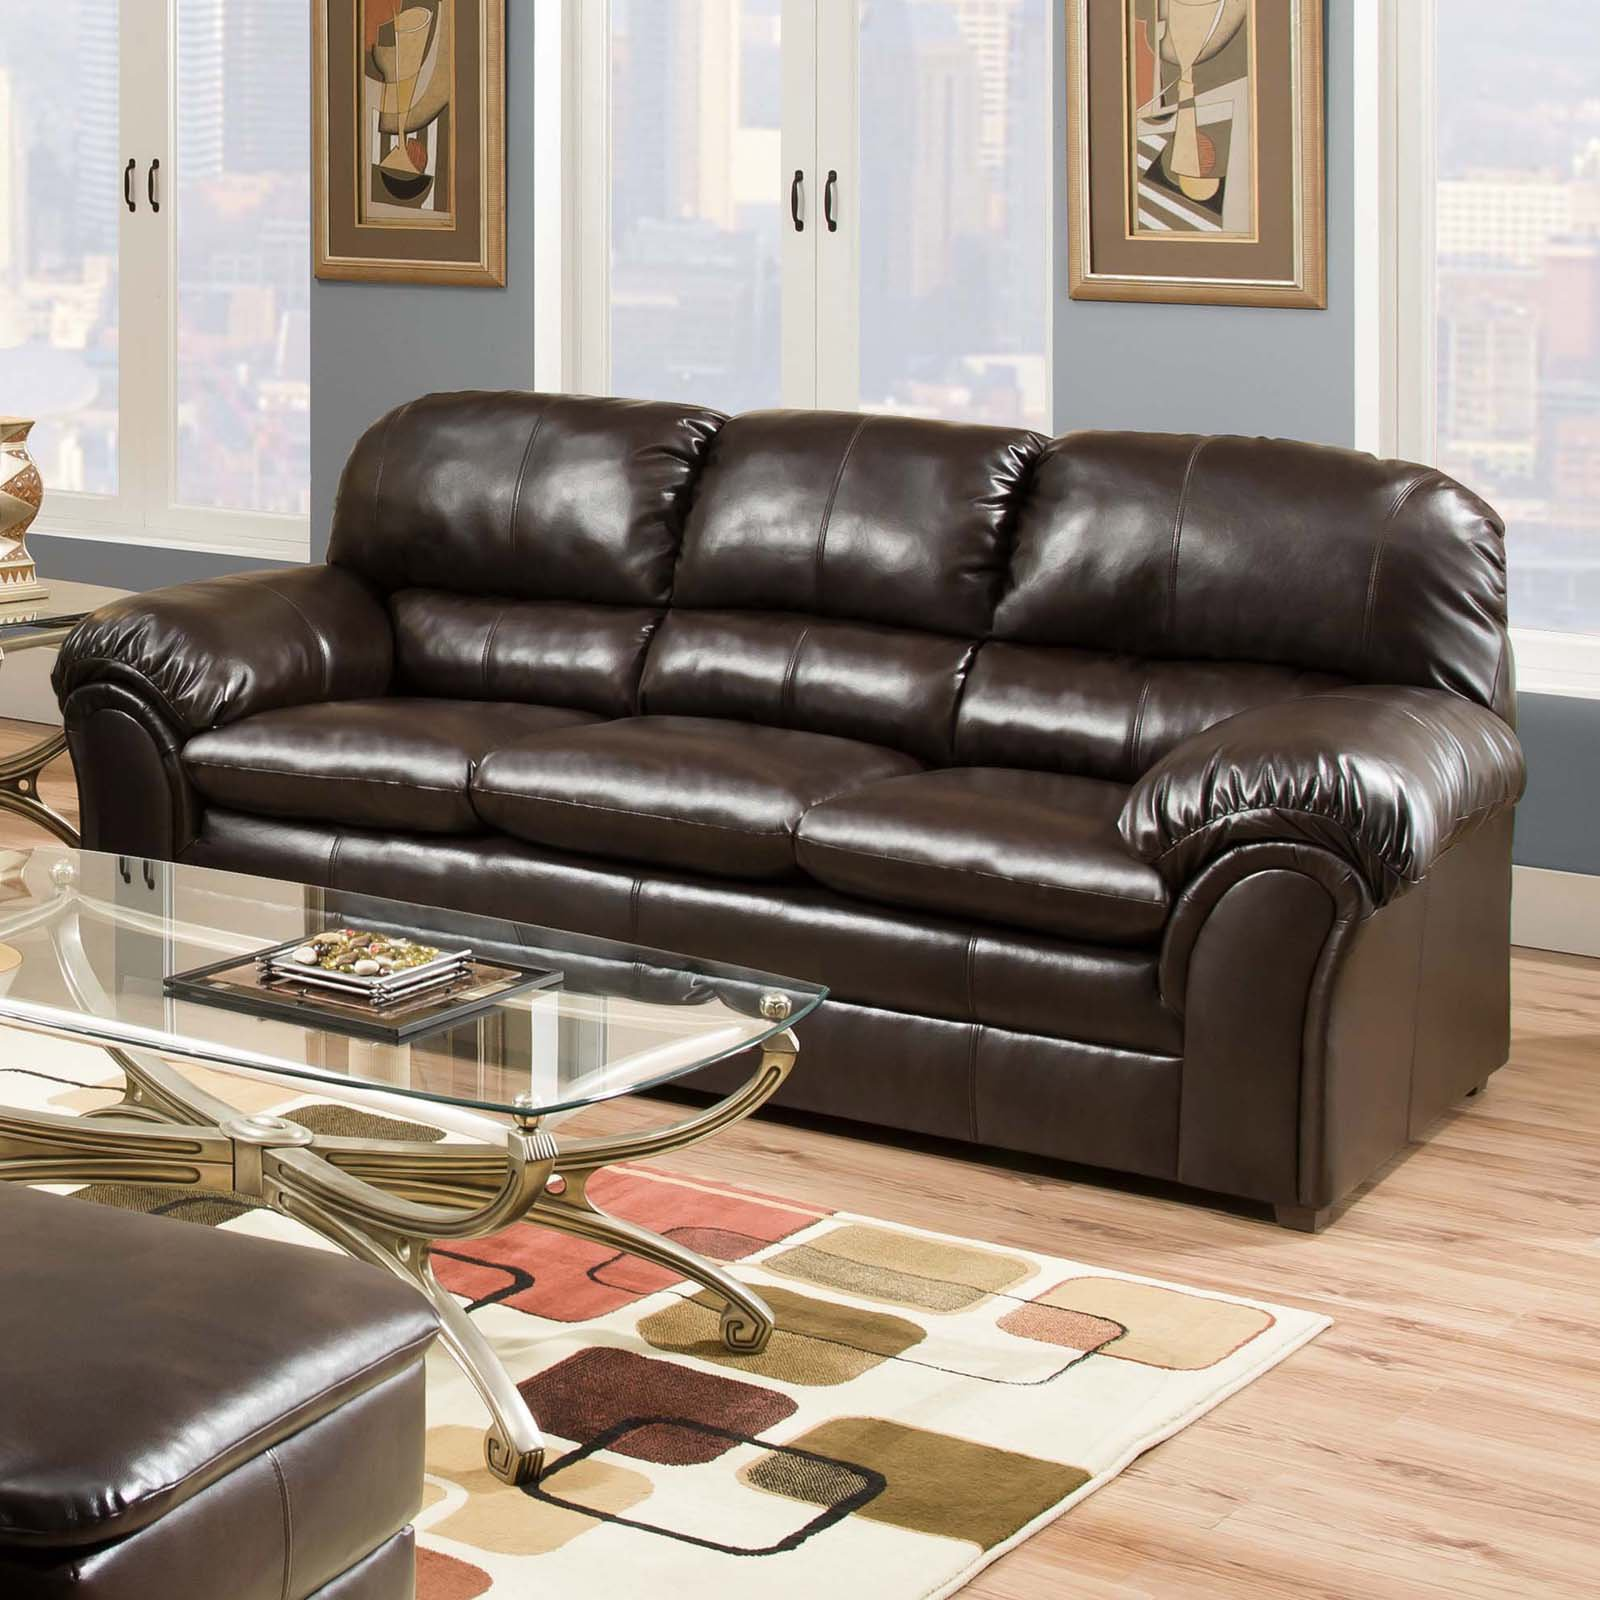 Ordinaire Simmons Upholstery Vintage Riverside Bonded Leather Sofa   Walmart.com